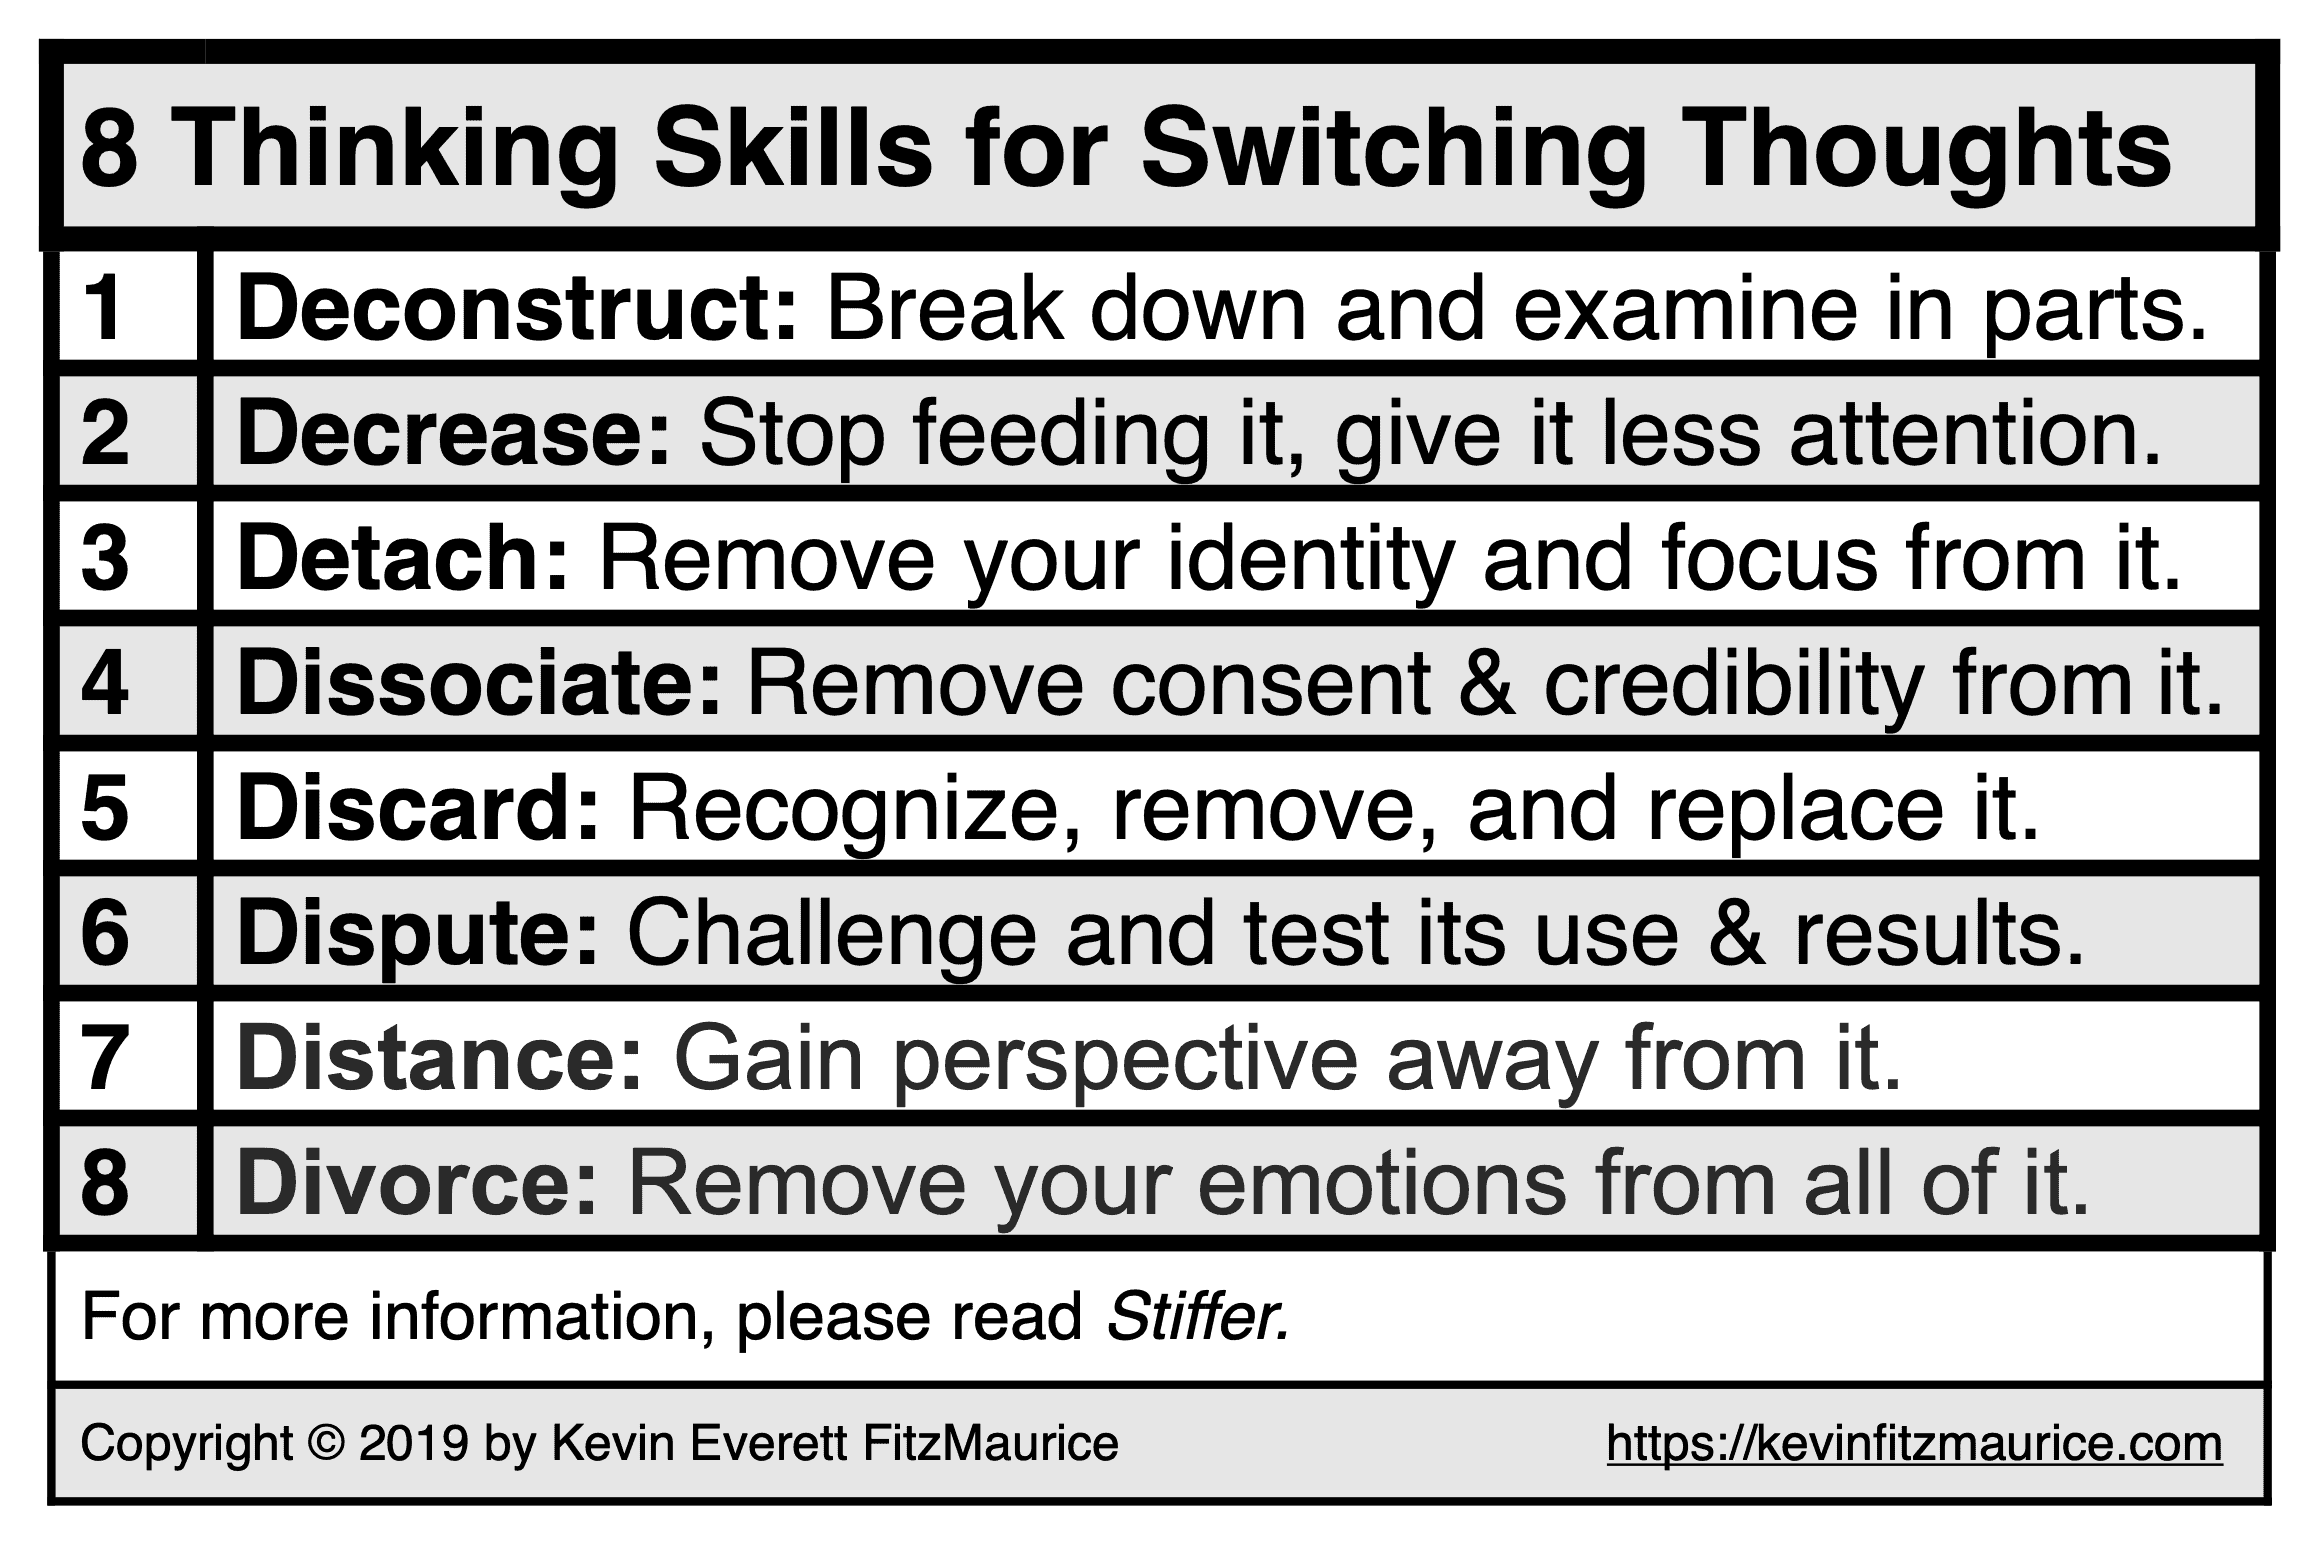 8 Thinking Skills to Use for Switching Your Thinking